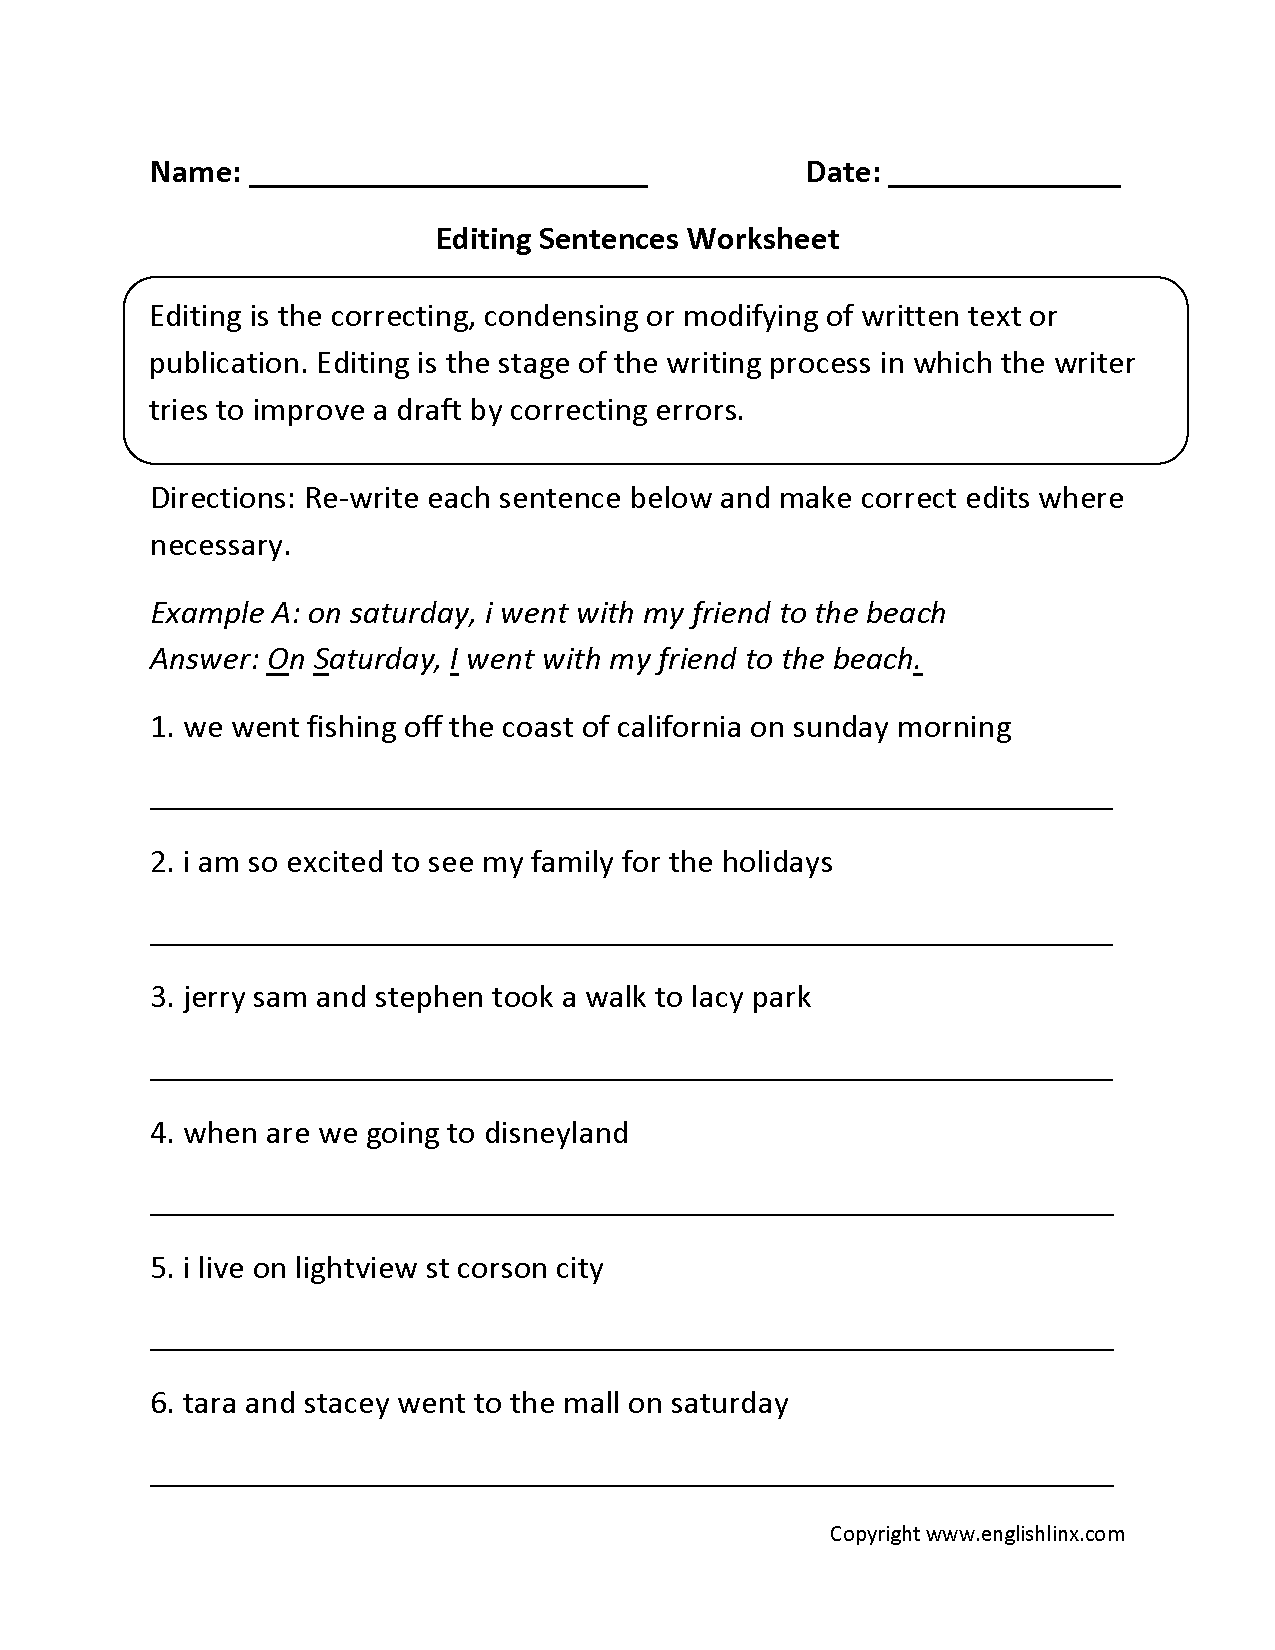 Worksheets Grammar Correction Worksheets writing worksheets editing worksheets